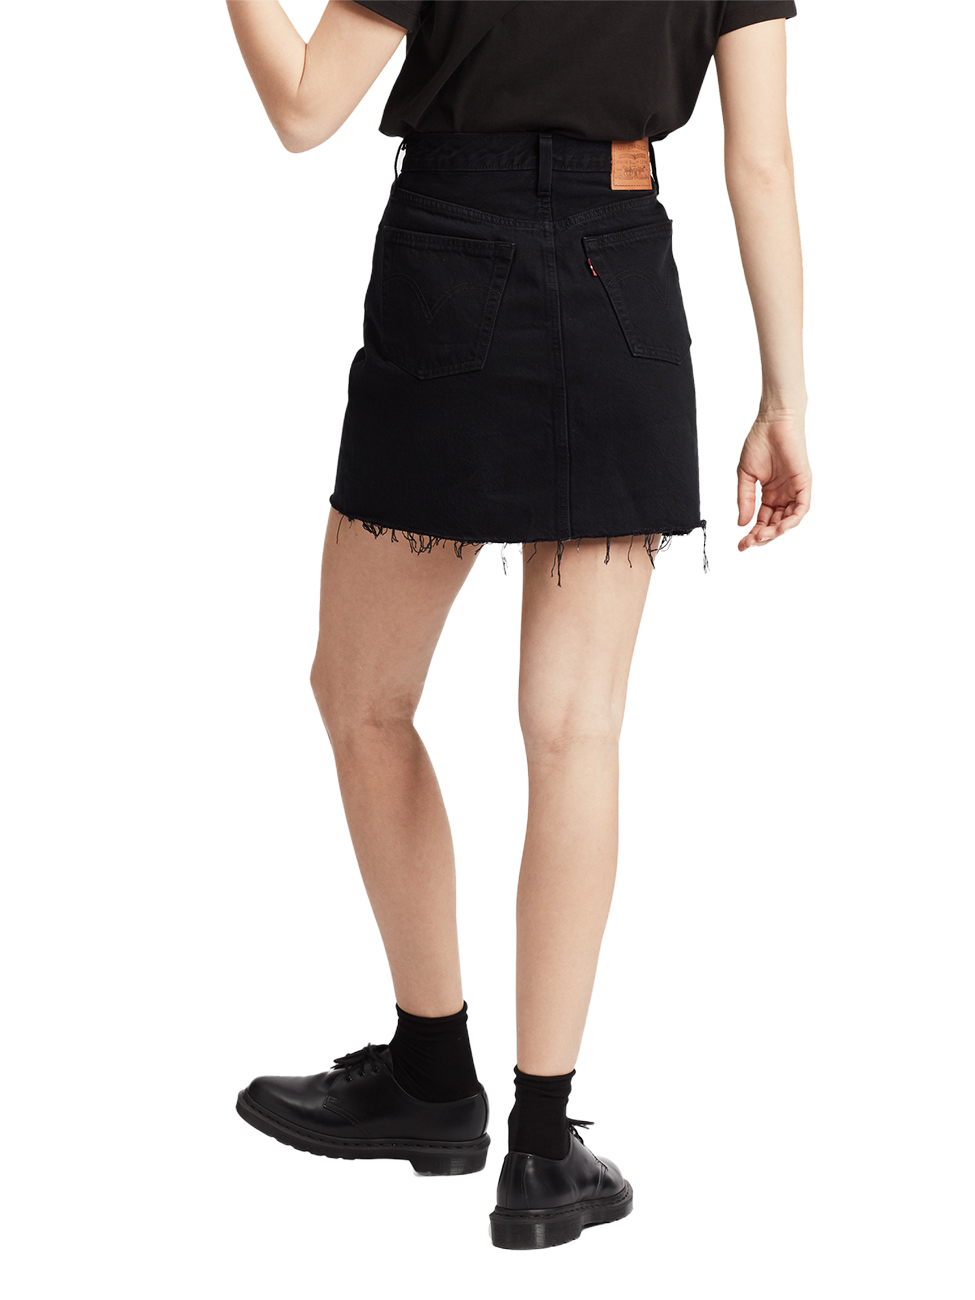 levis-damen-jeansrock-deconstructed-skirt